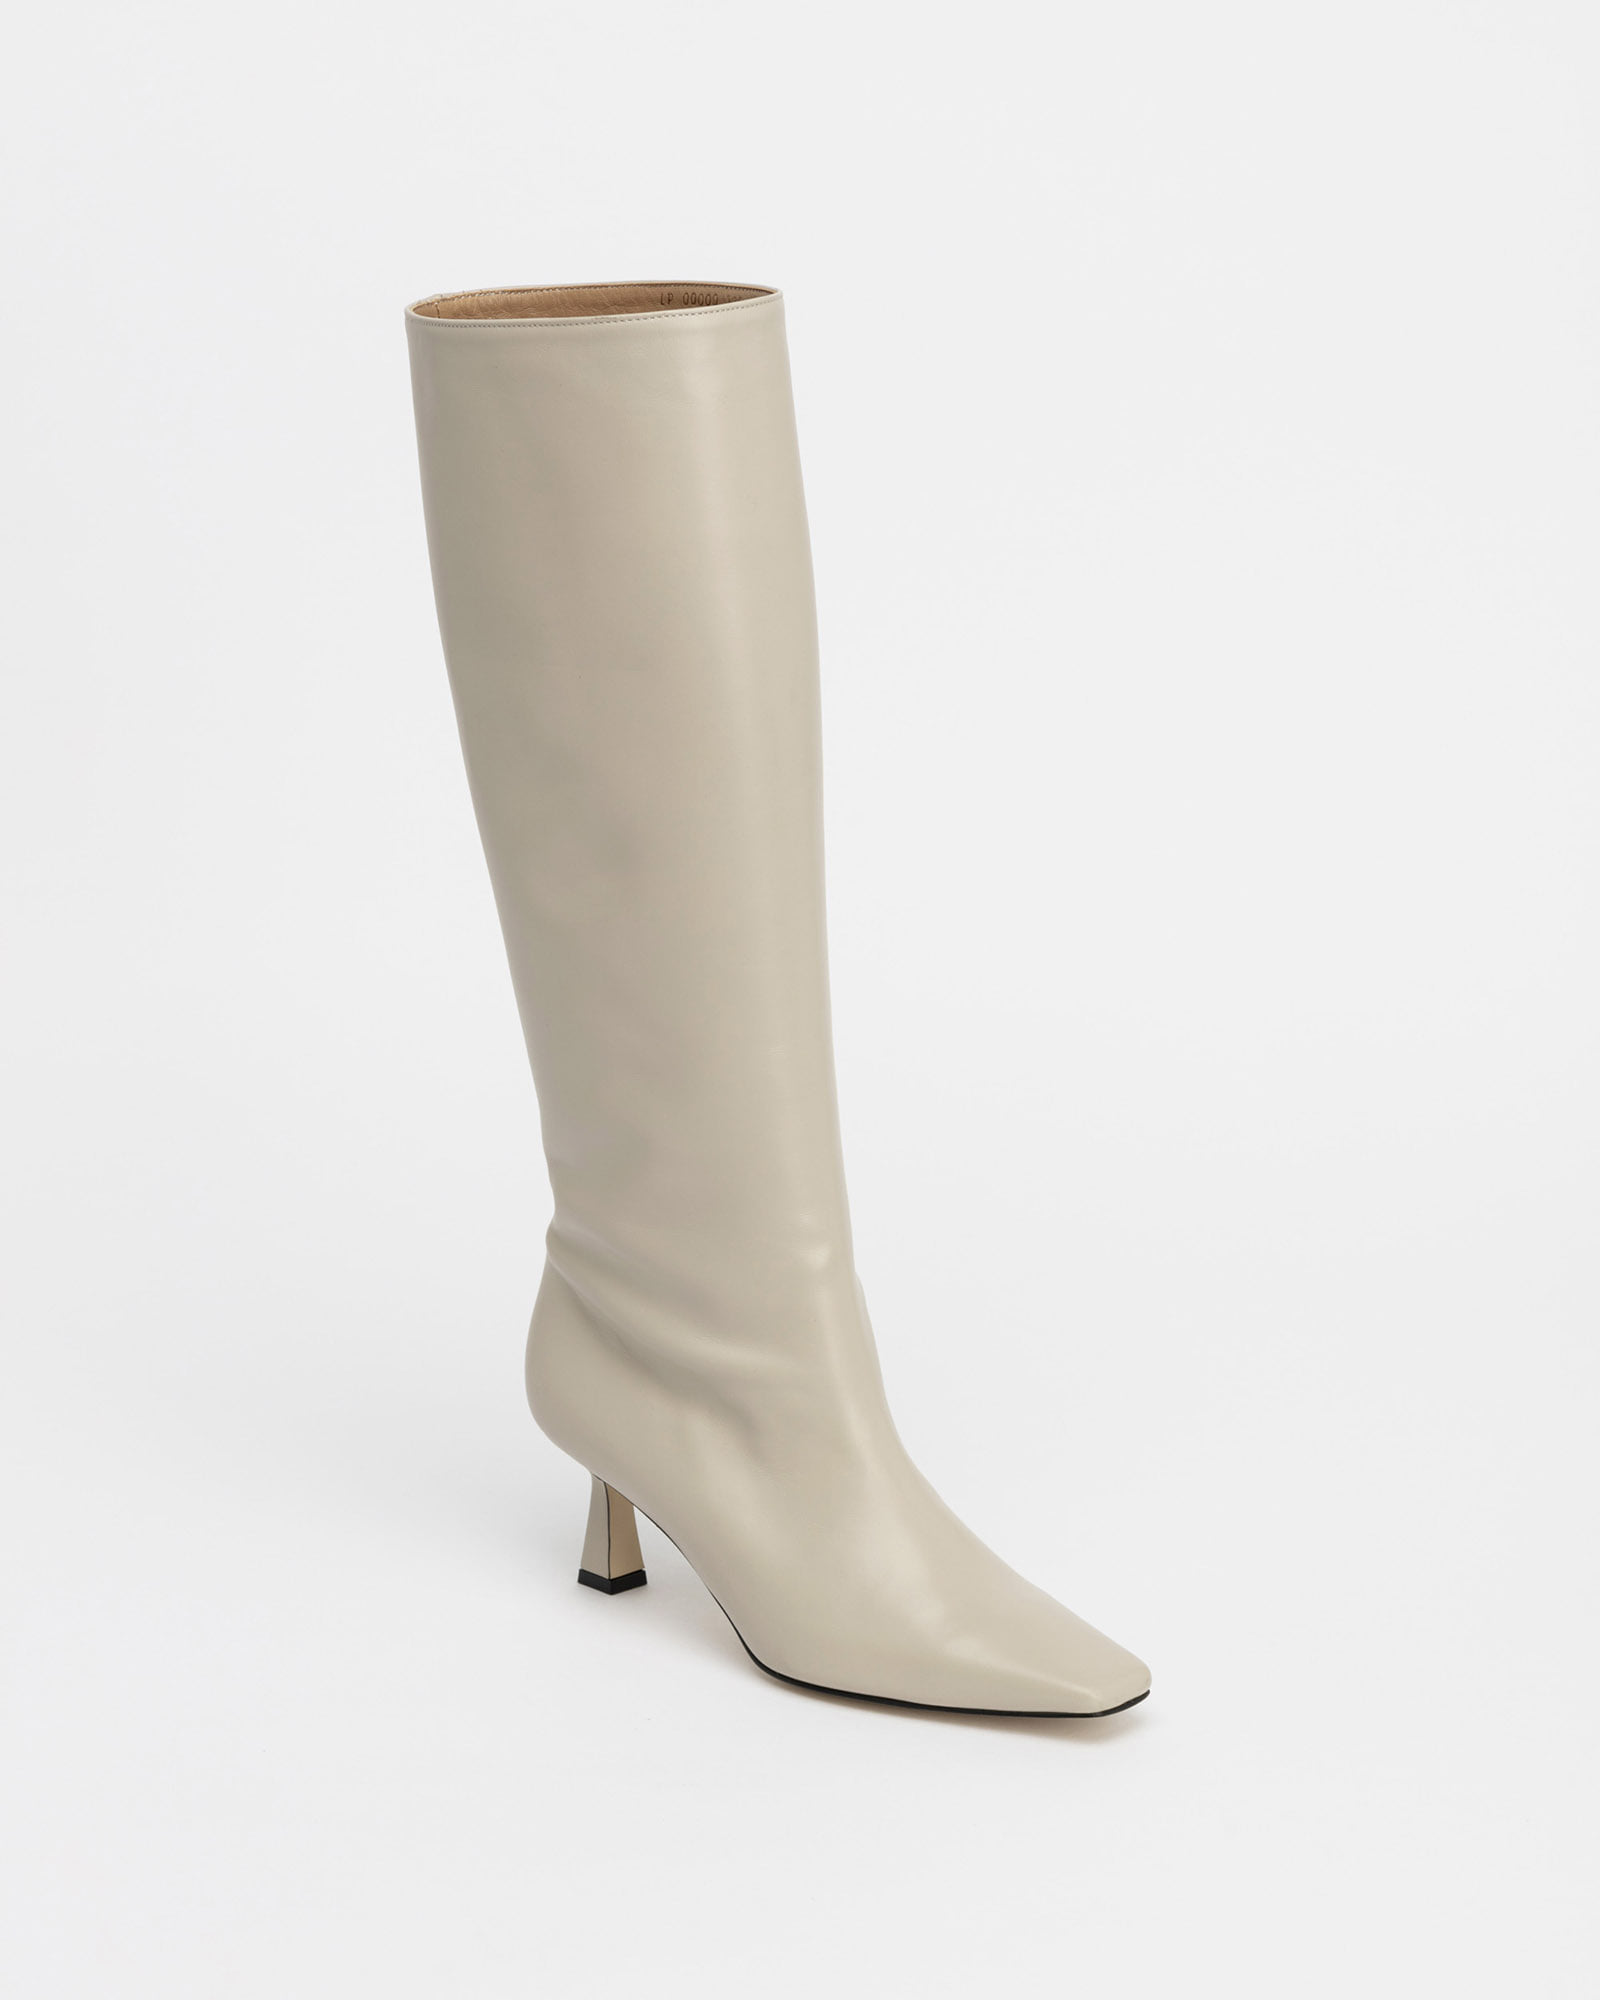 LOB Boots in Taupe Ivory